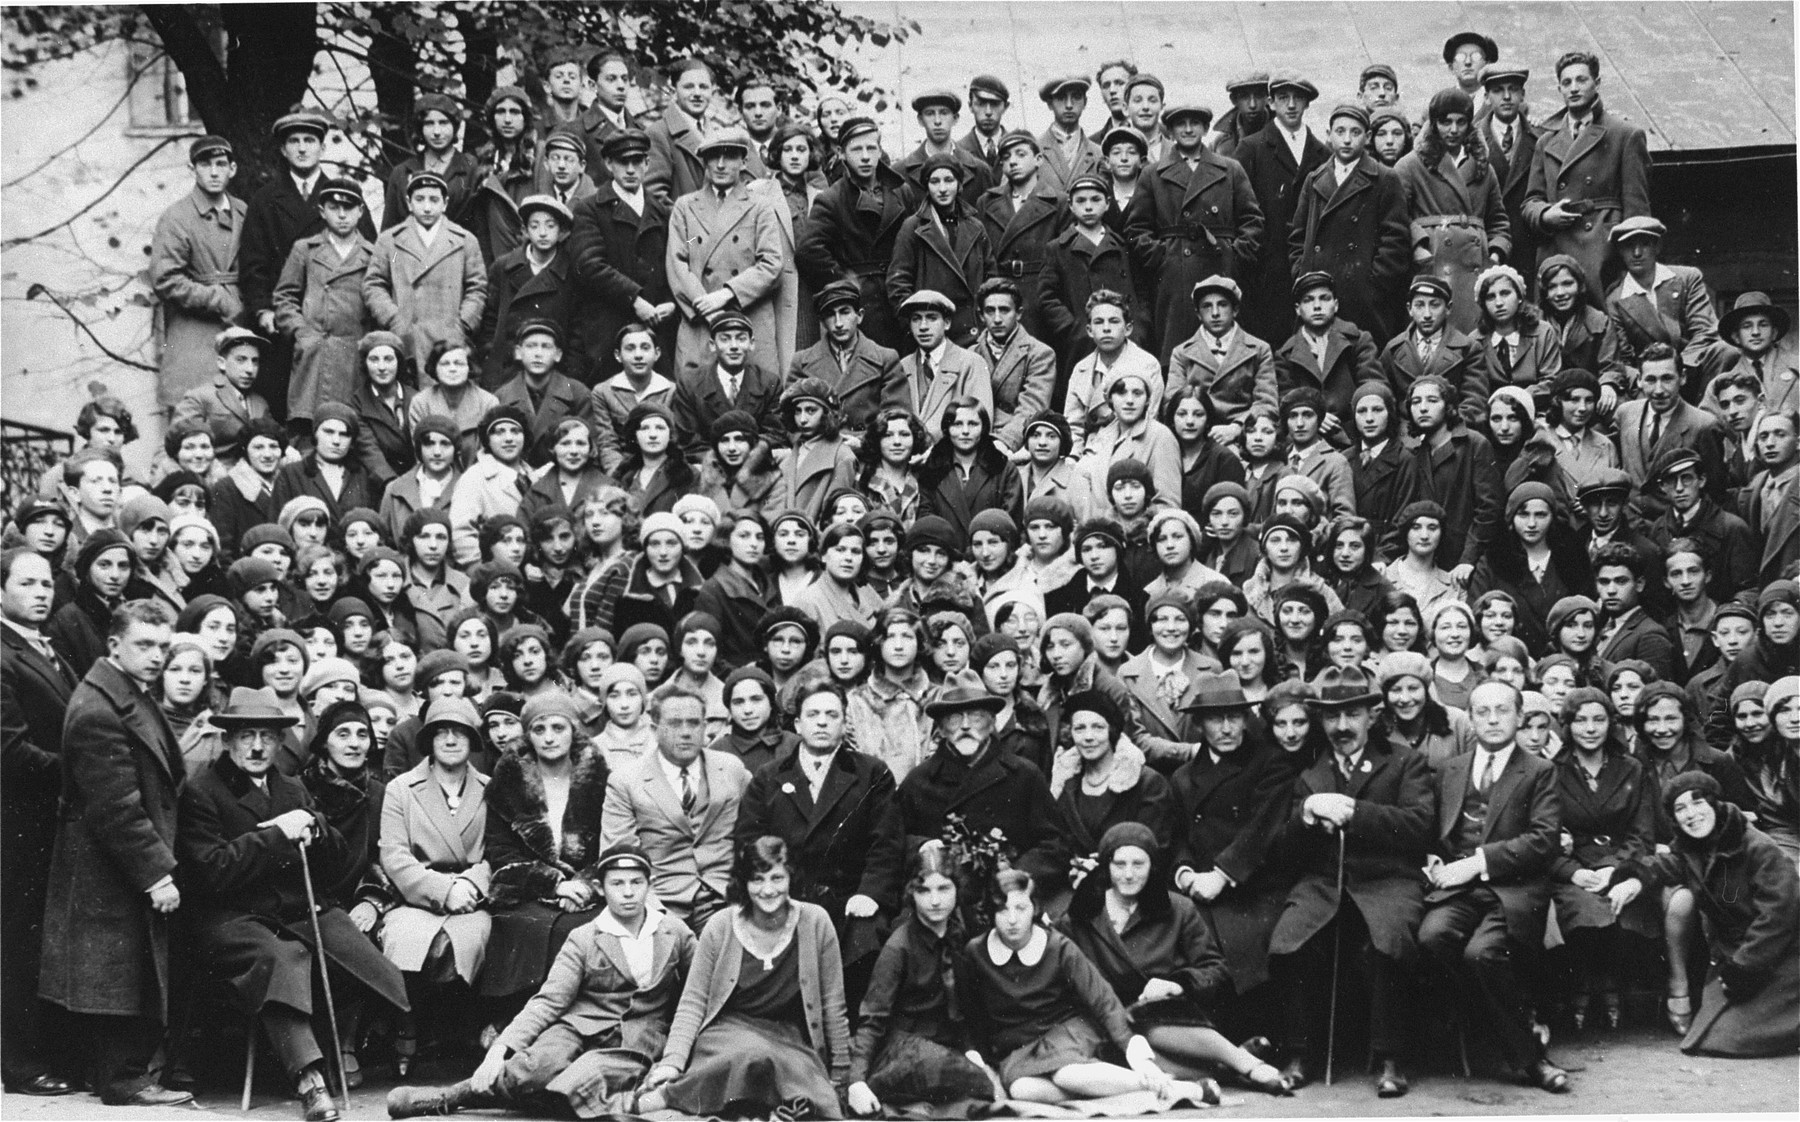 Group portrait of students from the Yiddish school in Riga.